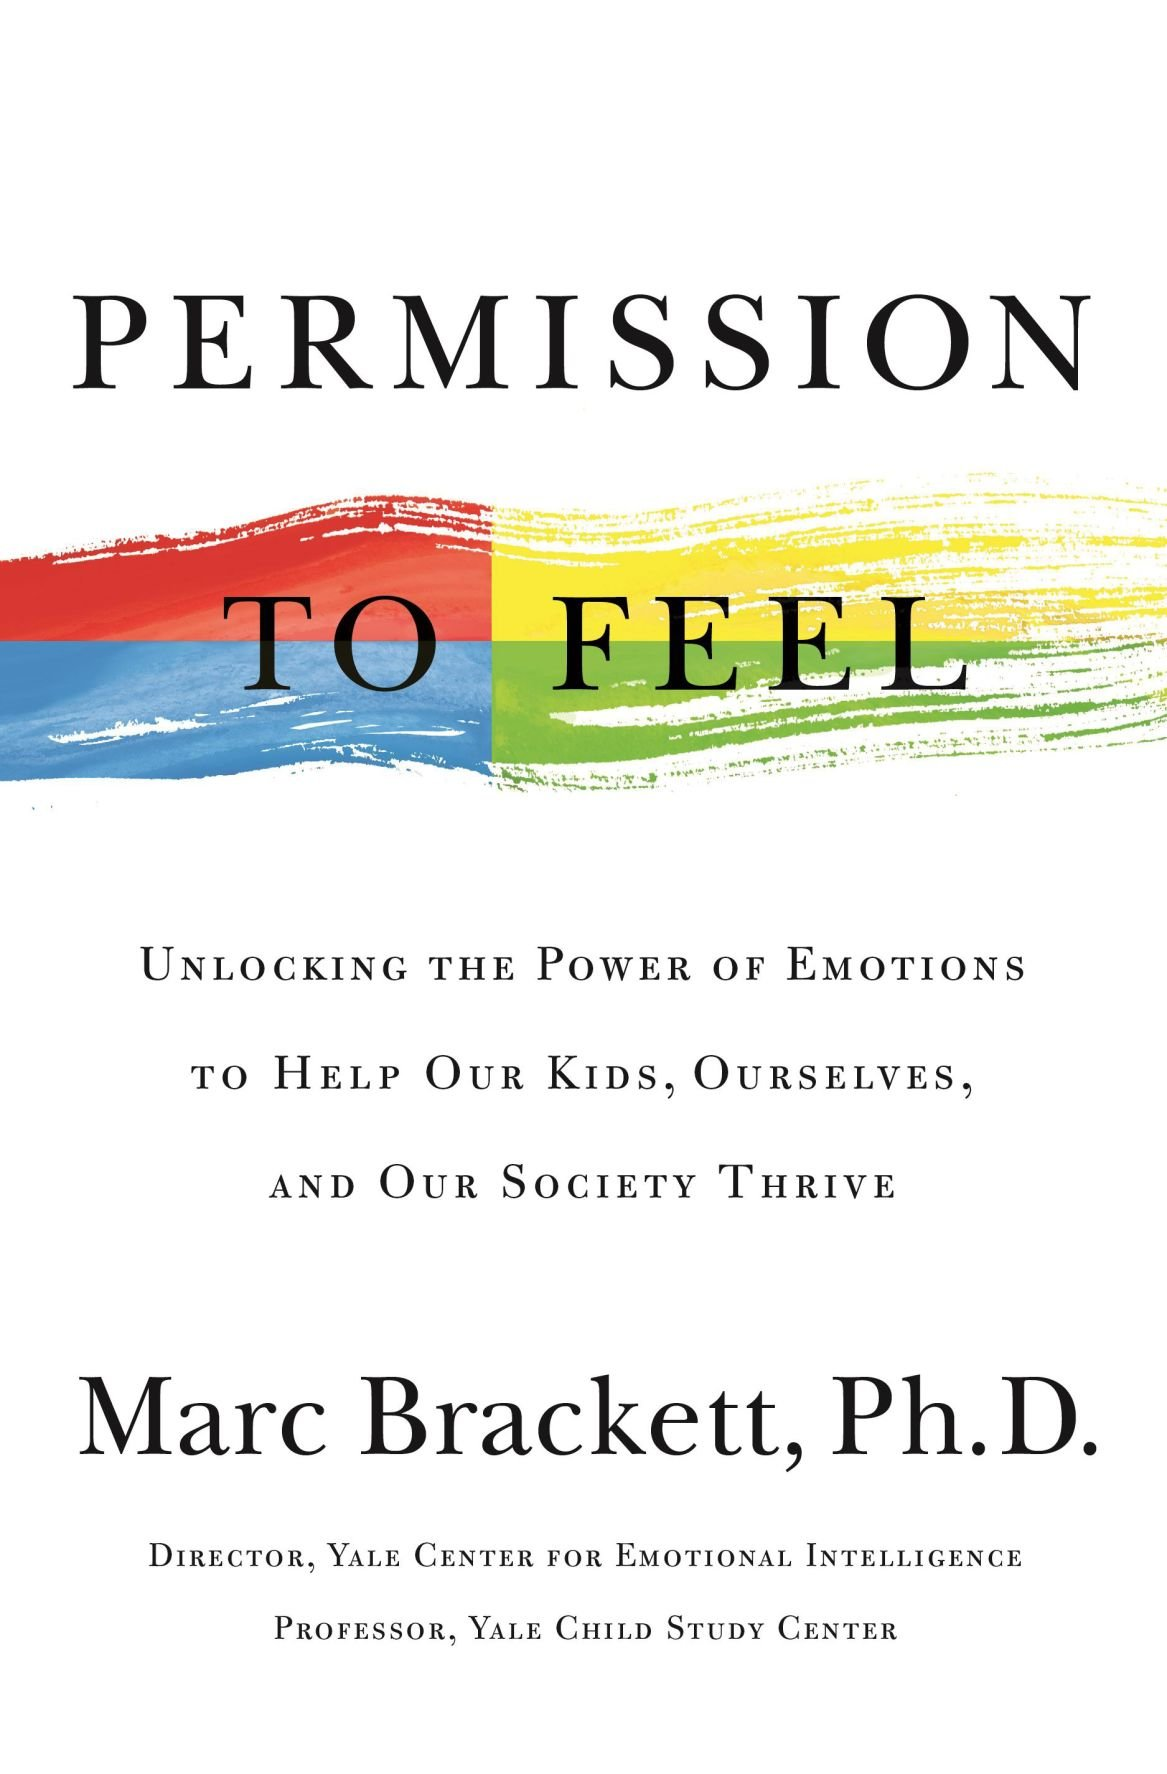 Yale professor's book offers 'Permission to Feel' as pro-social force